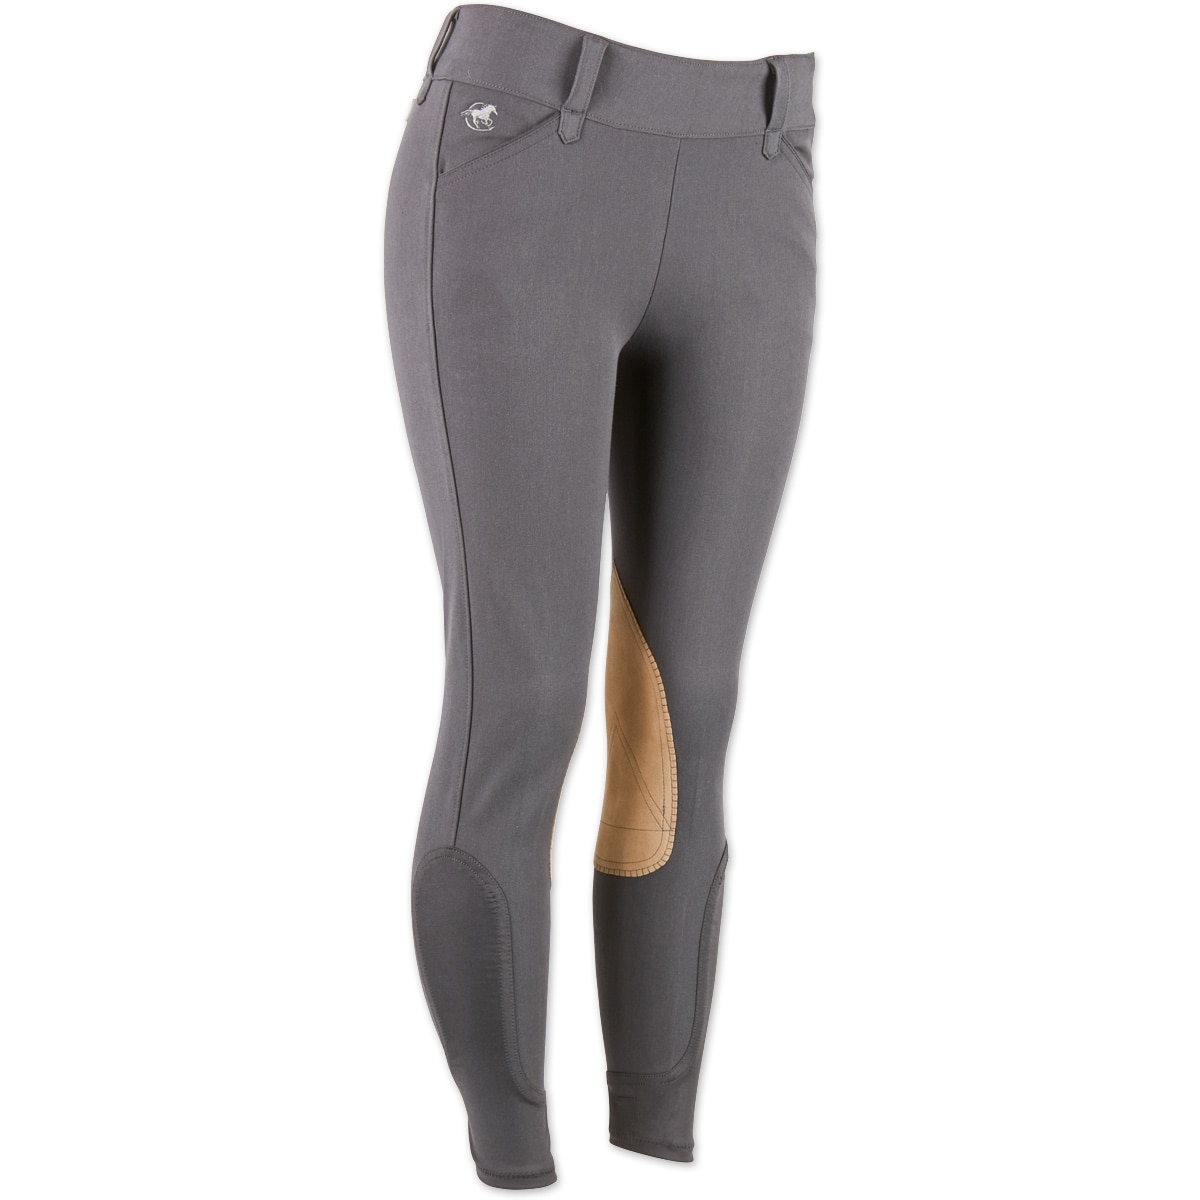 Piper Breeches by SmartPak - Tan Knee Patch Side Zip